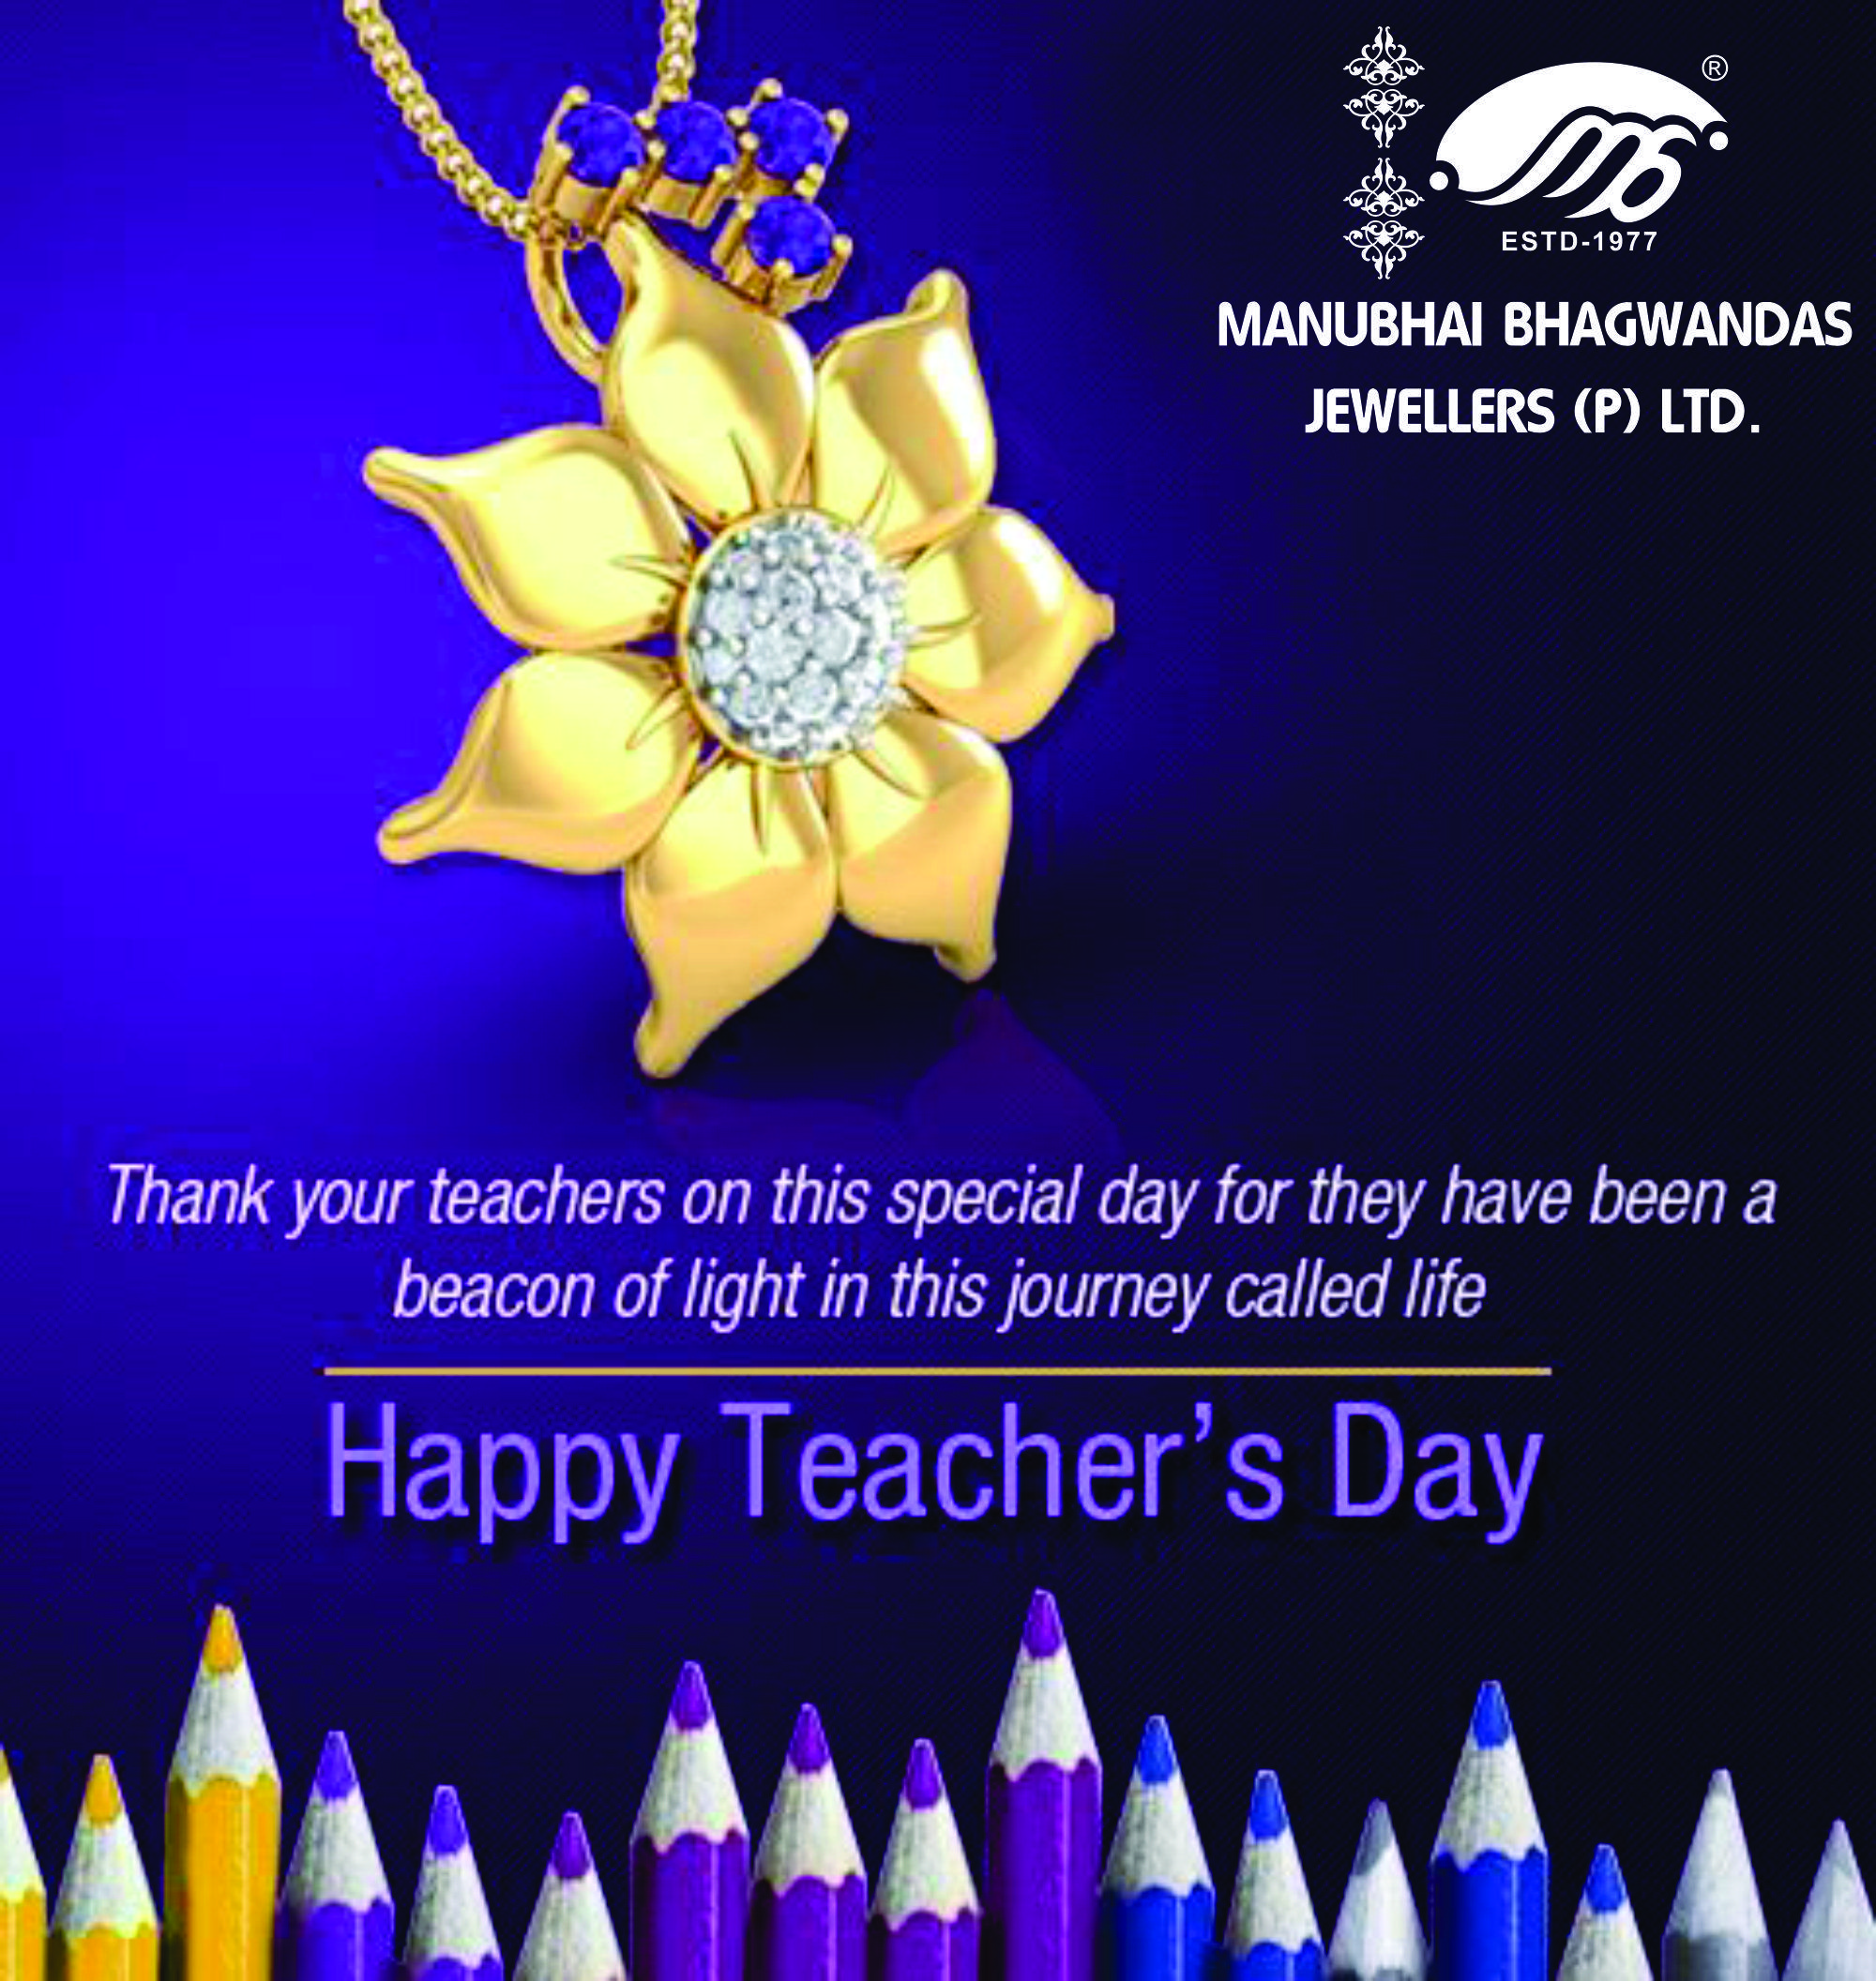 Happy Teachers Day Happy Teachers Day Gold Jewelry Stores Online Gold Jewellery